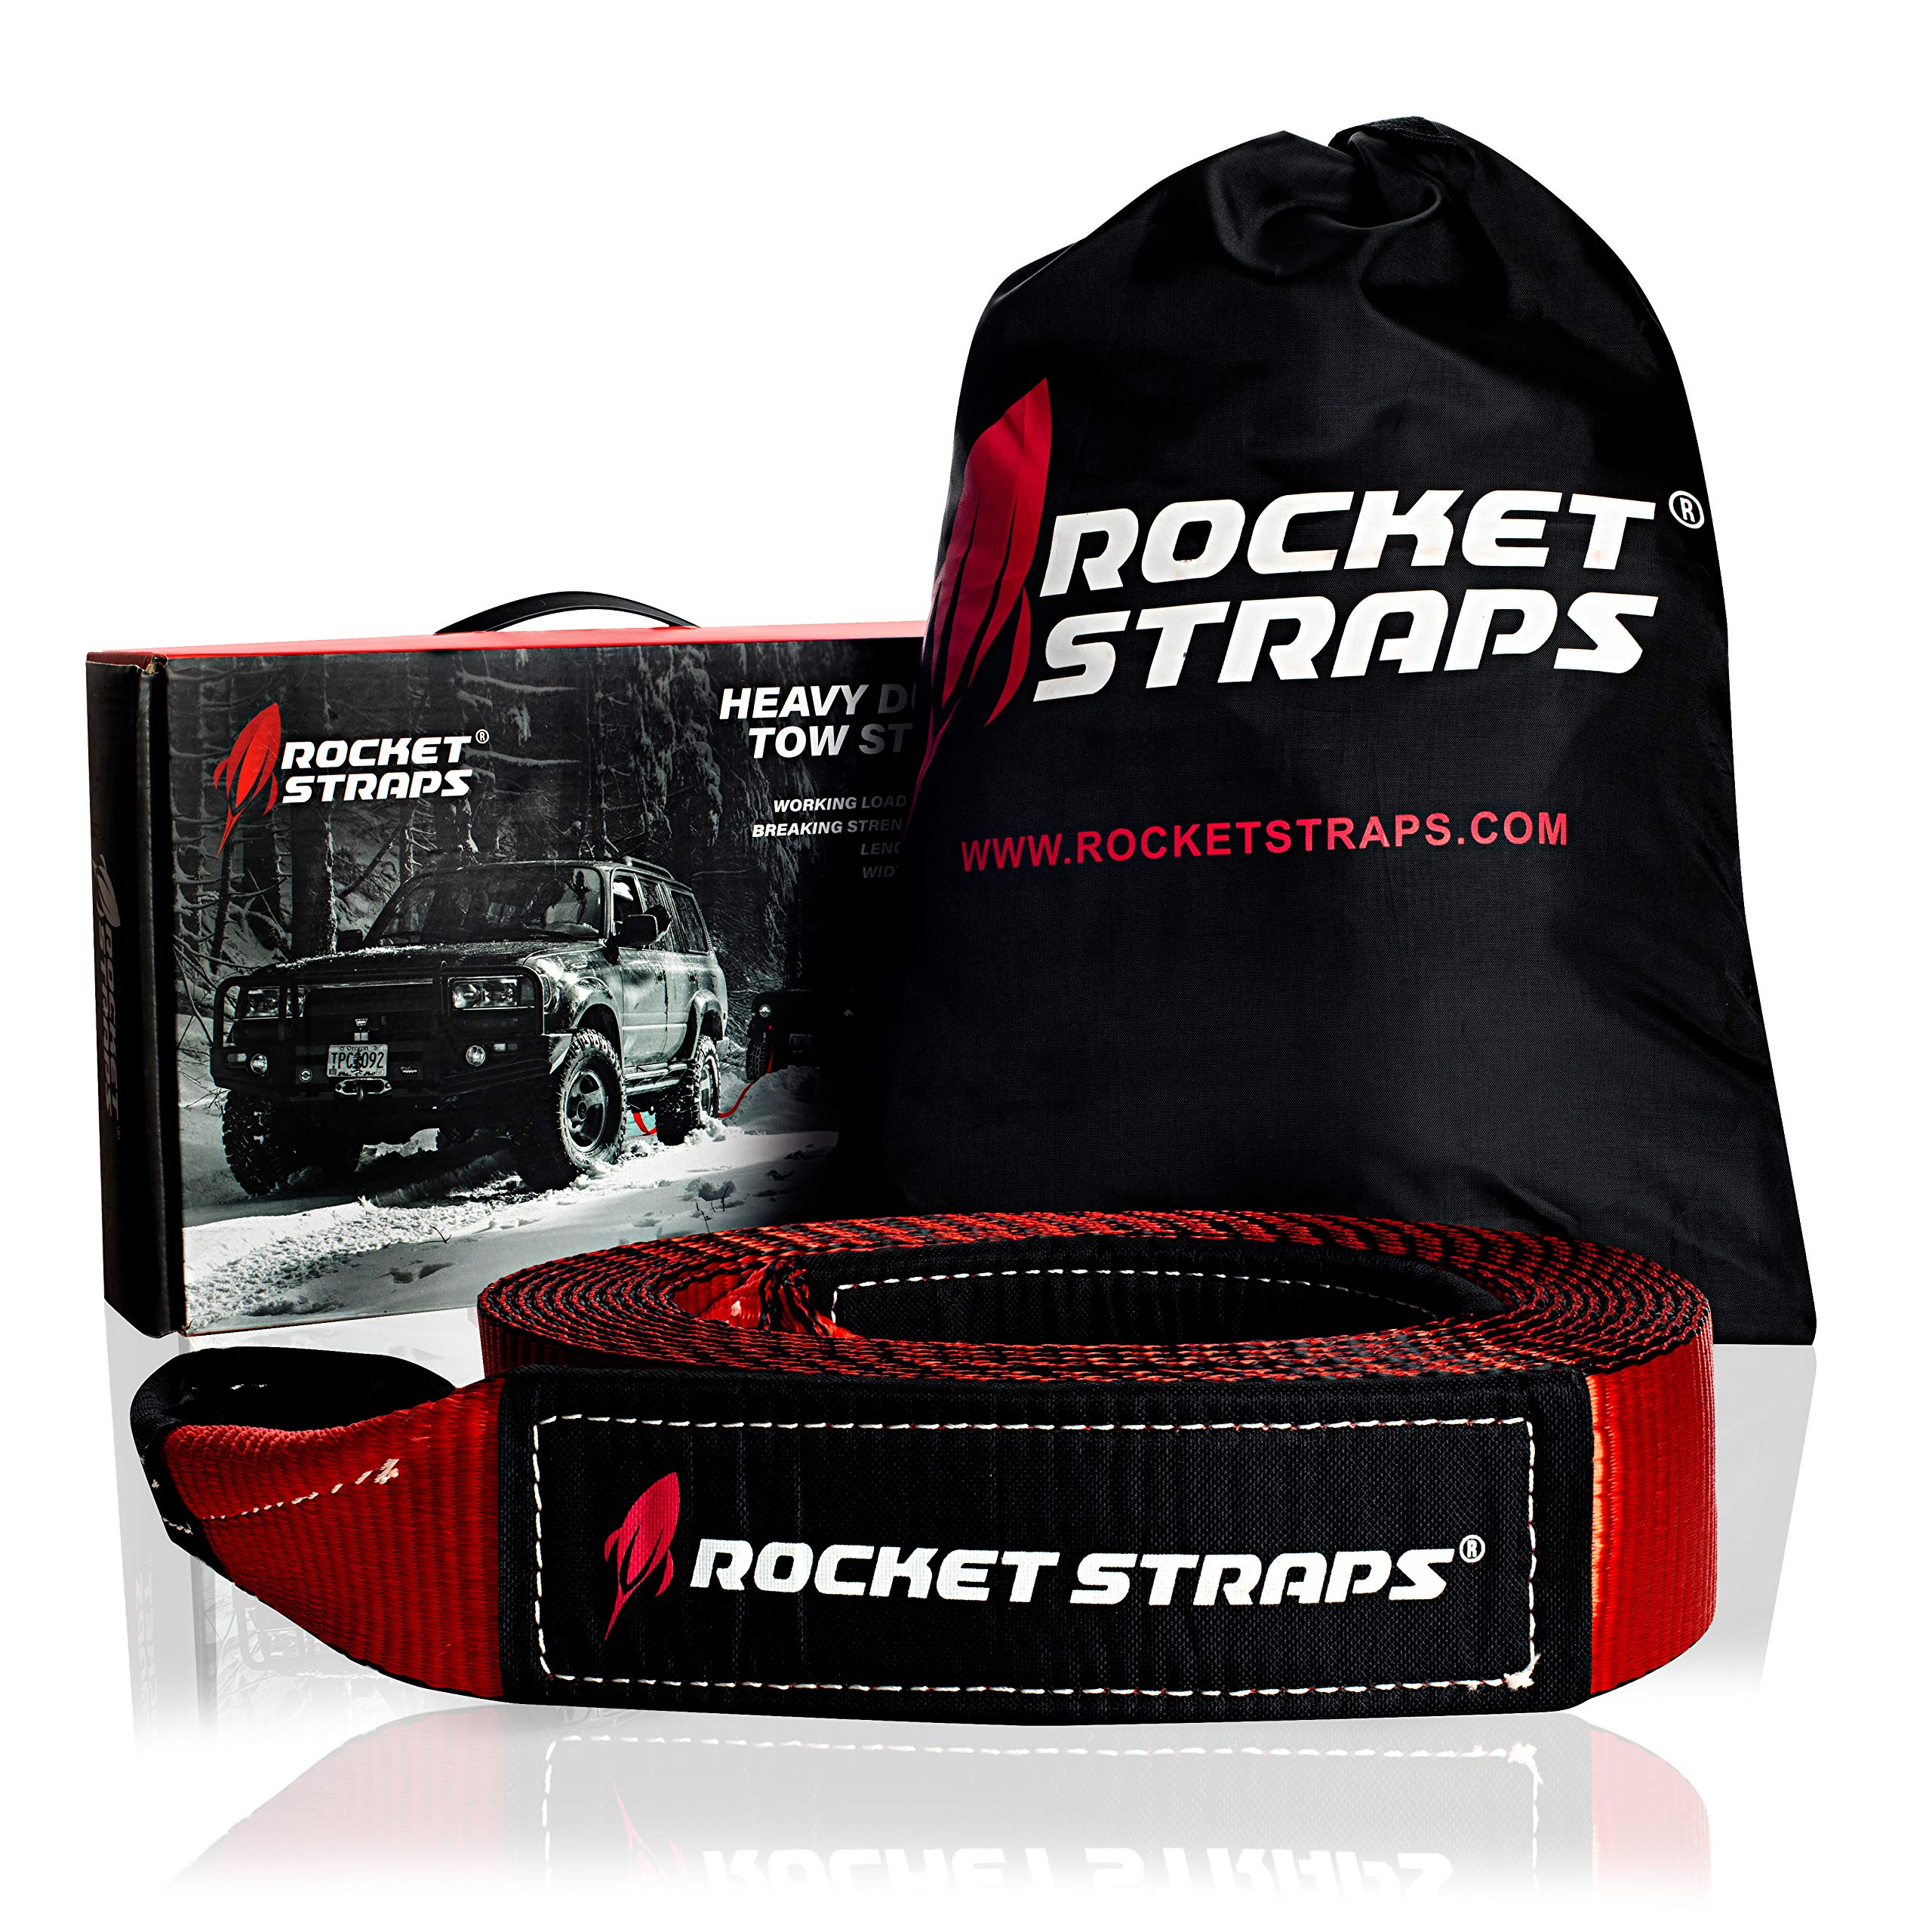 Rocket Straps - 3'' x 30' Heavy Duty Tow Strap | 30,000 LBS Rated Capacity Recovery Strap | Vehicle Tow Straps with Protected Loop Ends | Emergency Off Road Truck Accessories Towing Rope | Storage Bag by Rocket Straps